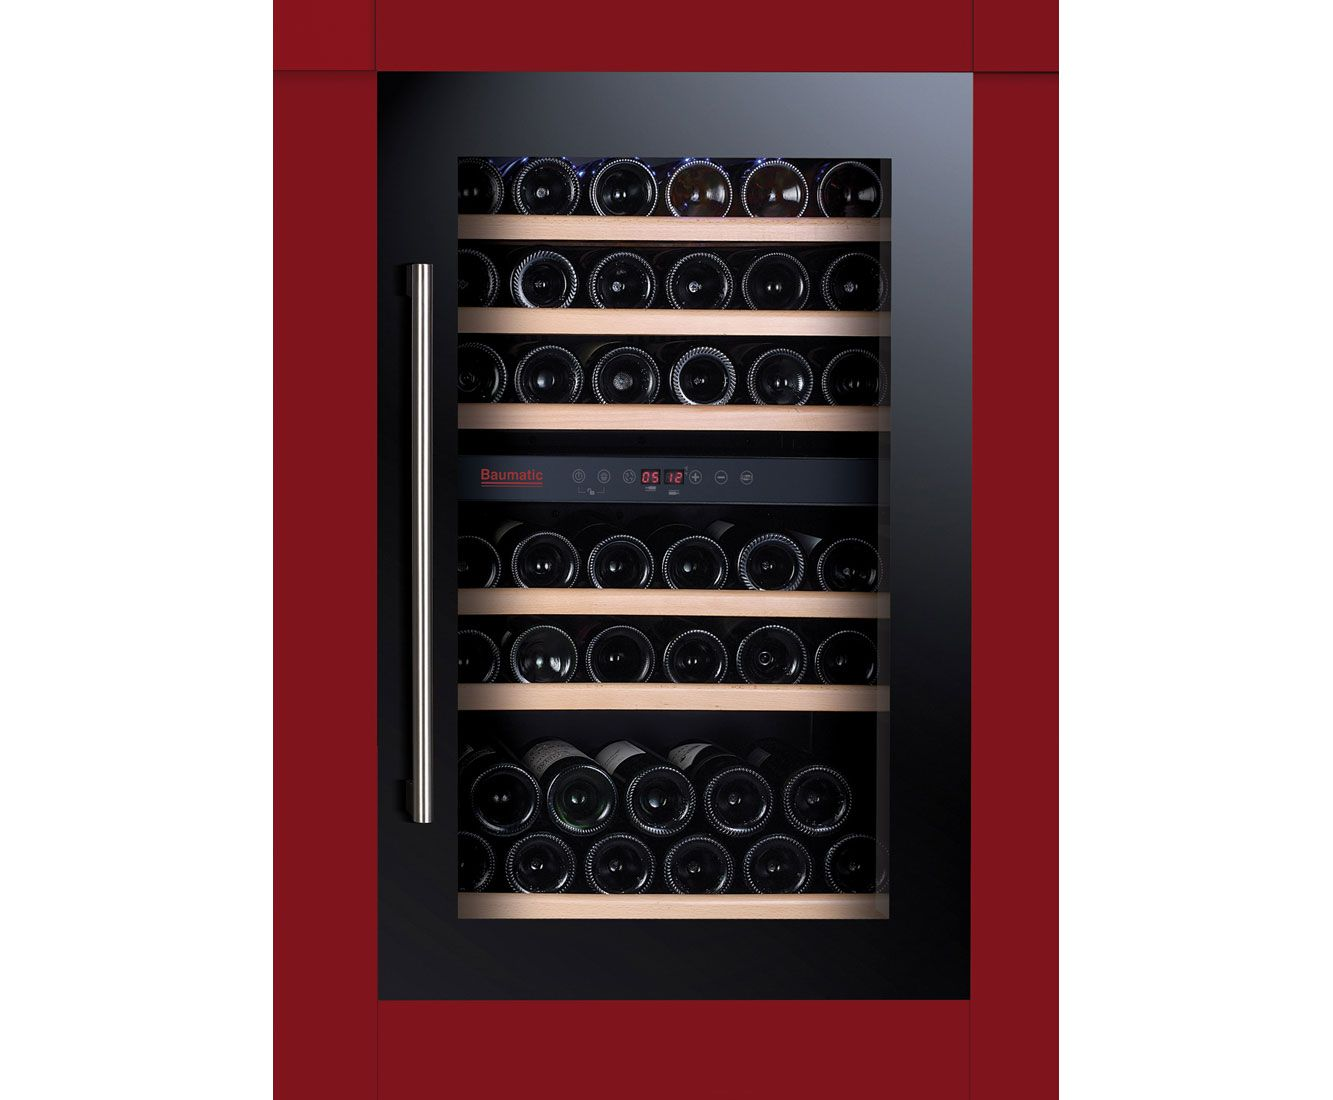 Baumatic Bwc885bgl Built In Wine Cooler Black Built In Wine Cooler Integrated Wine Cooler Wine Cabinets